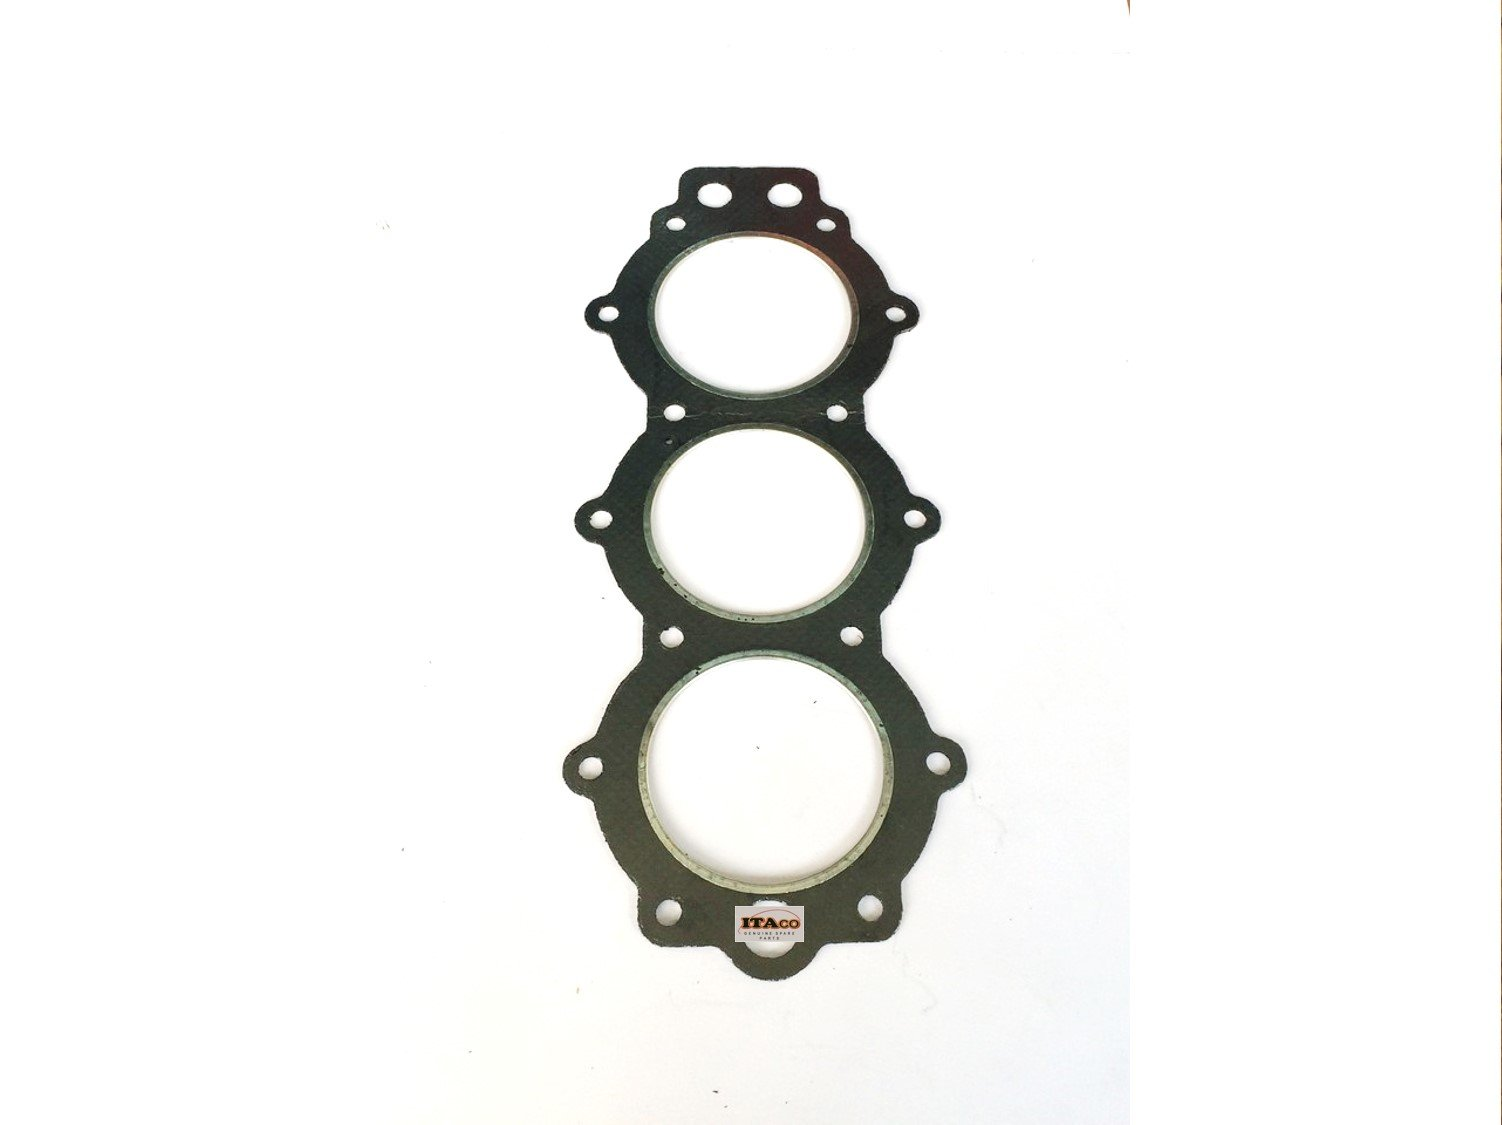 HEAD GASKET 0329836 18-3836 fit JOHNSON EVINRUDE OUTBOARD 40HP - 55HP 60HP 3 CYL